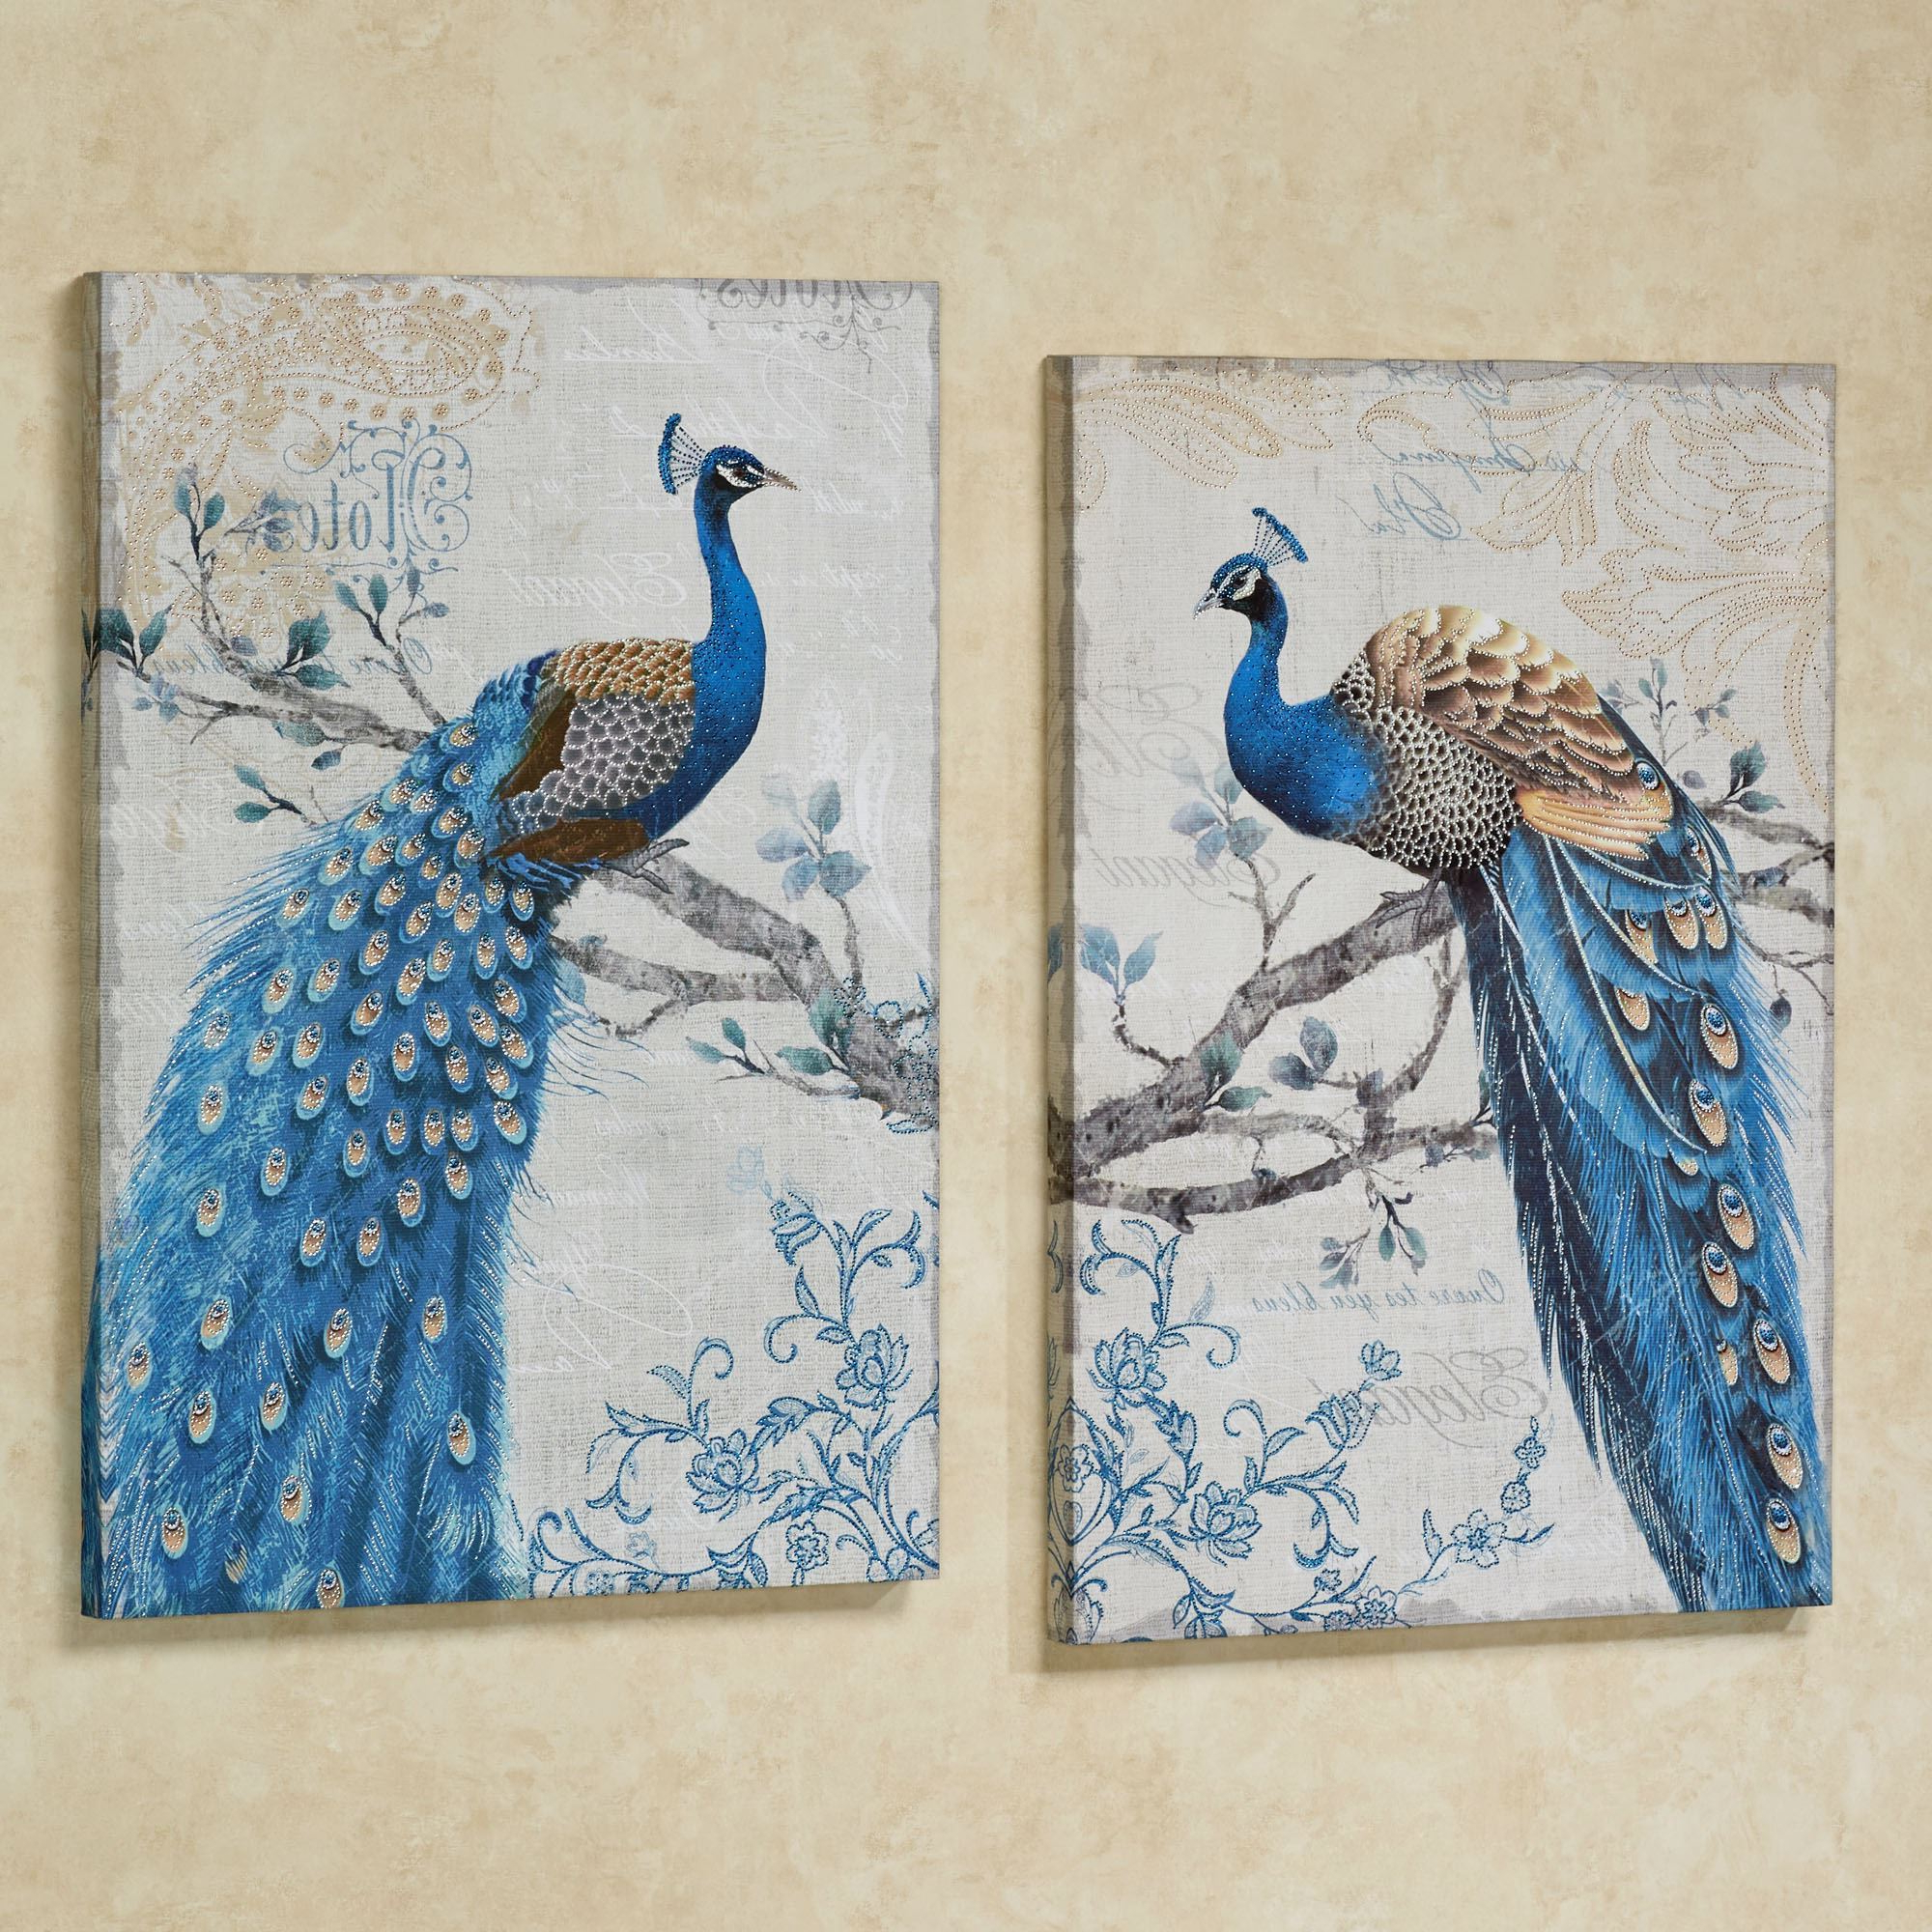 Latest Magnificent Peacock Giclee Canvas Wall Art Set Pertaining To Panel Wood Wall Decor Sets (Set Of 2) (Gallery 20 of 20)